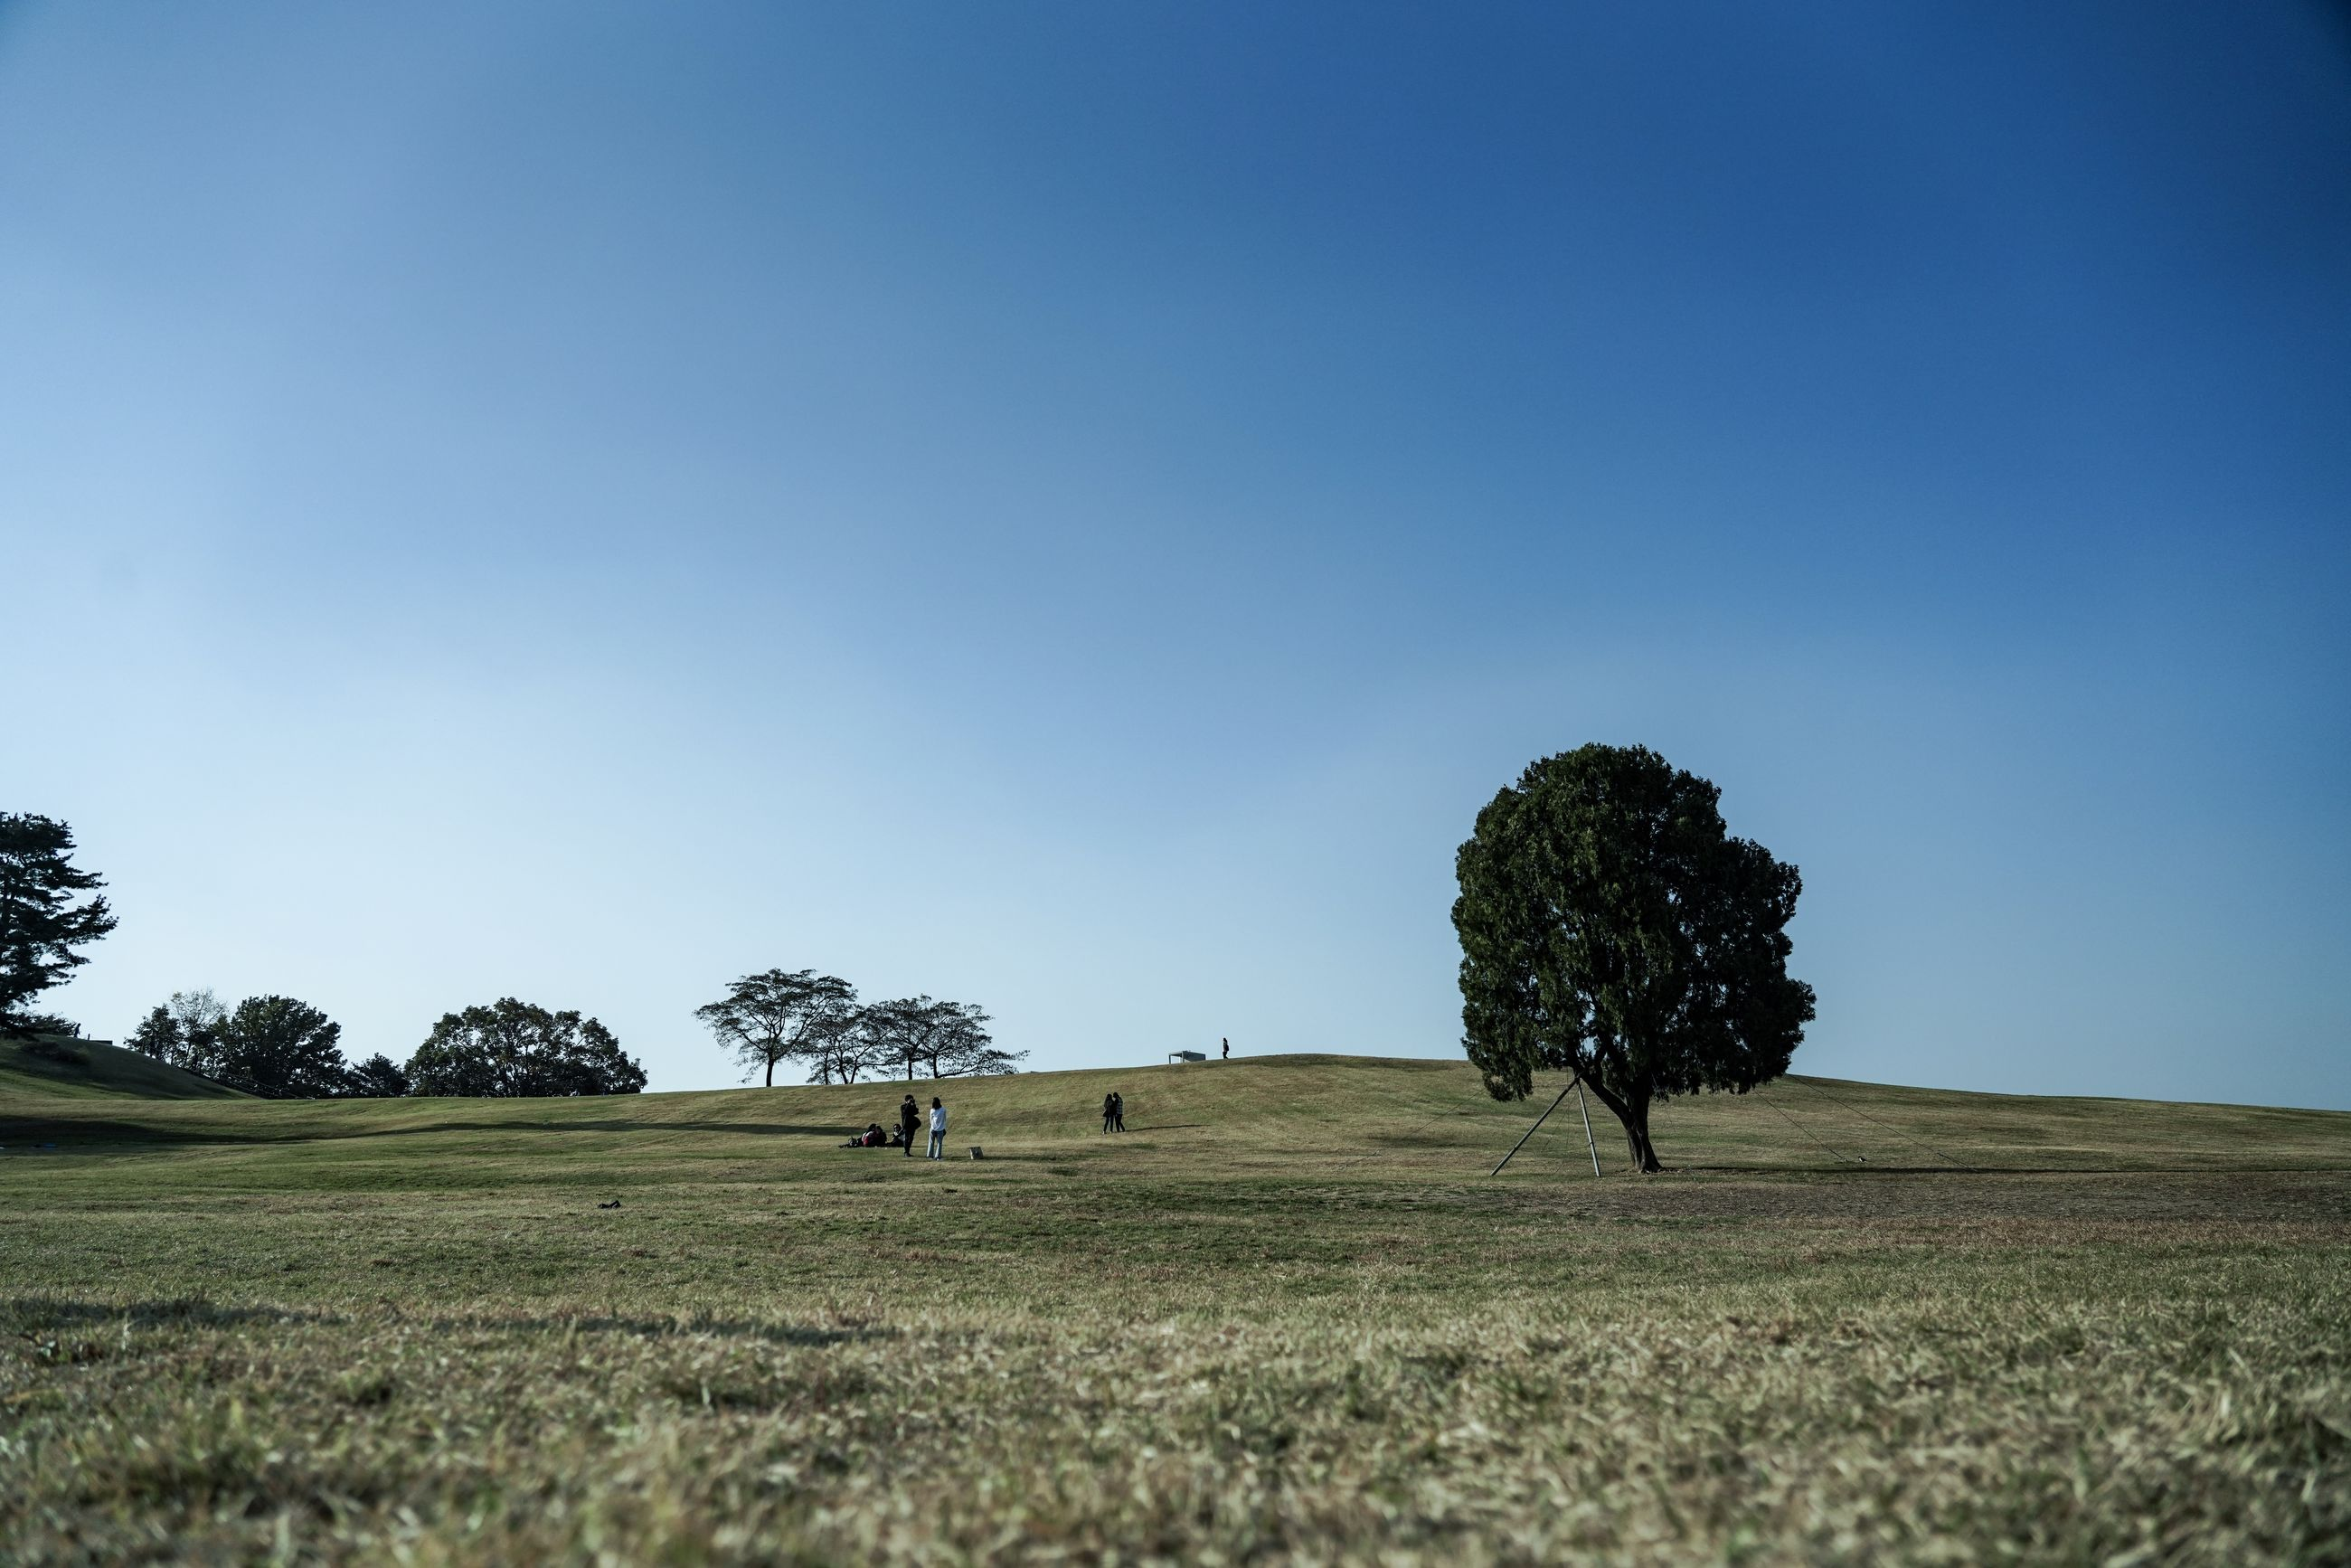 plant, sky, field, land, environment, landscape, tranquility, grass, tranquil scene, tree, beauty in nature, scenics - nature, nature, blue, day, non-urban scene, clear sky, copy space, growth, no people, outdoors, isolated